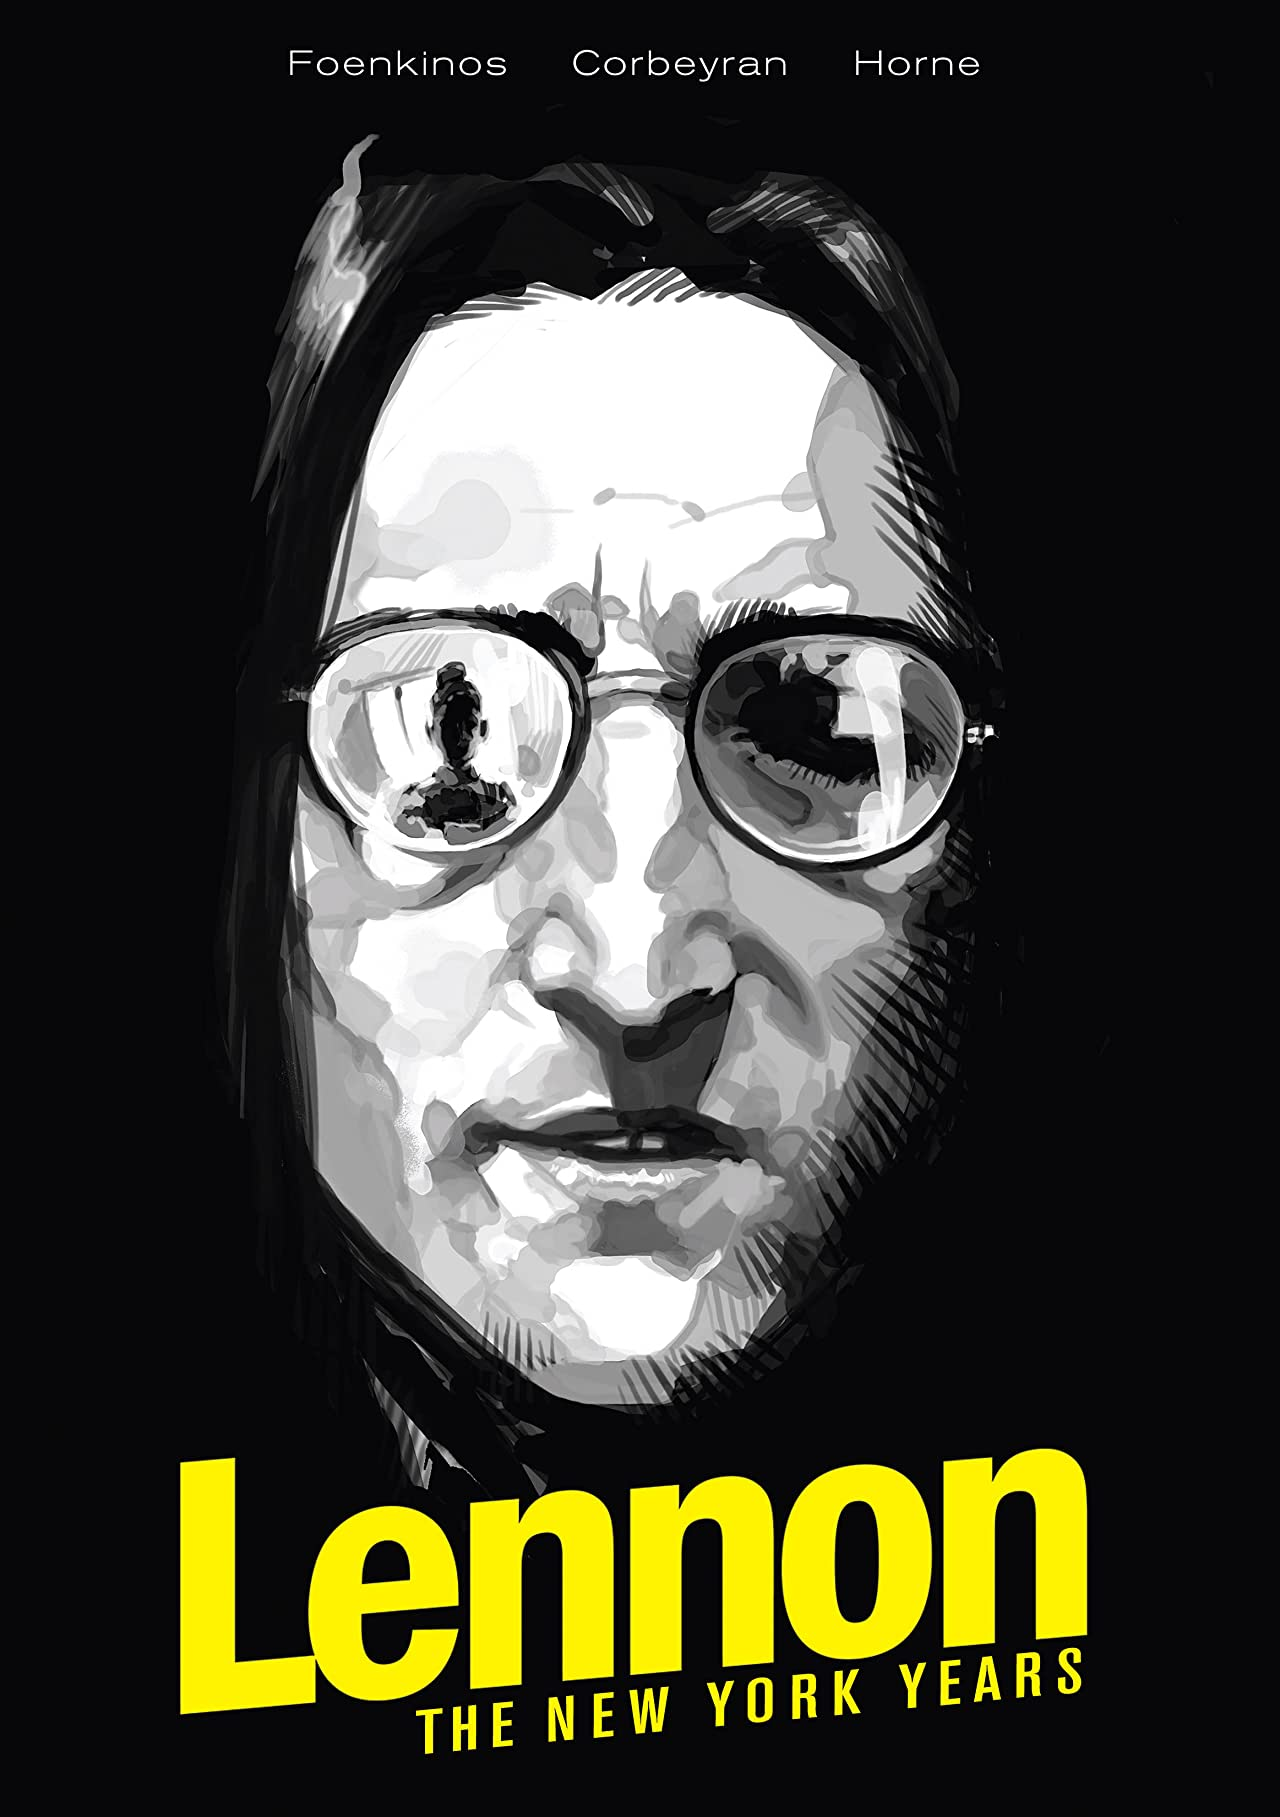 Lennon: The New York Years